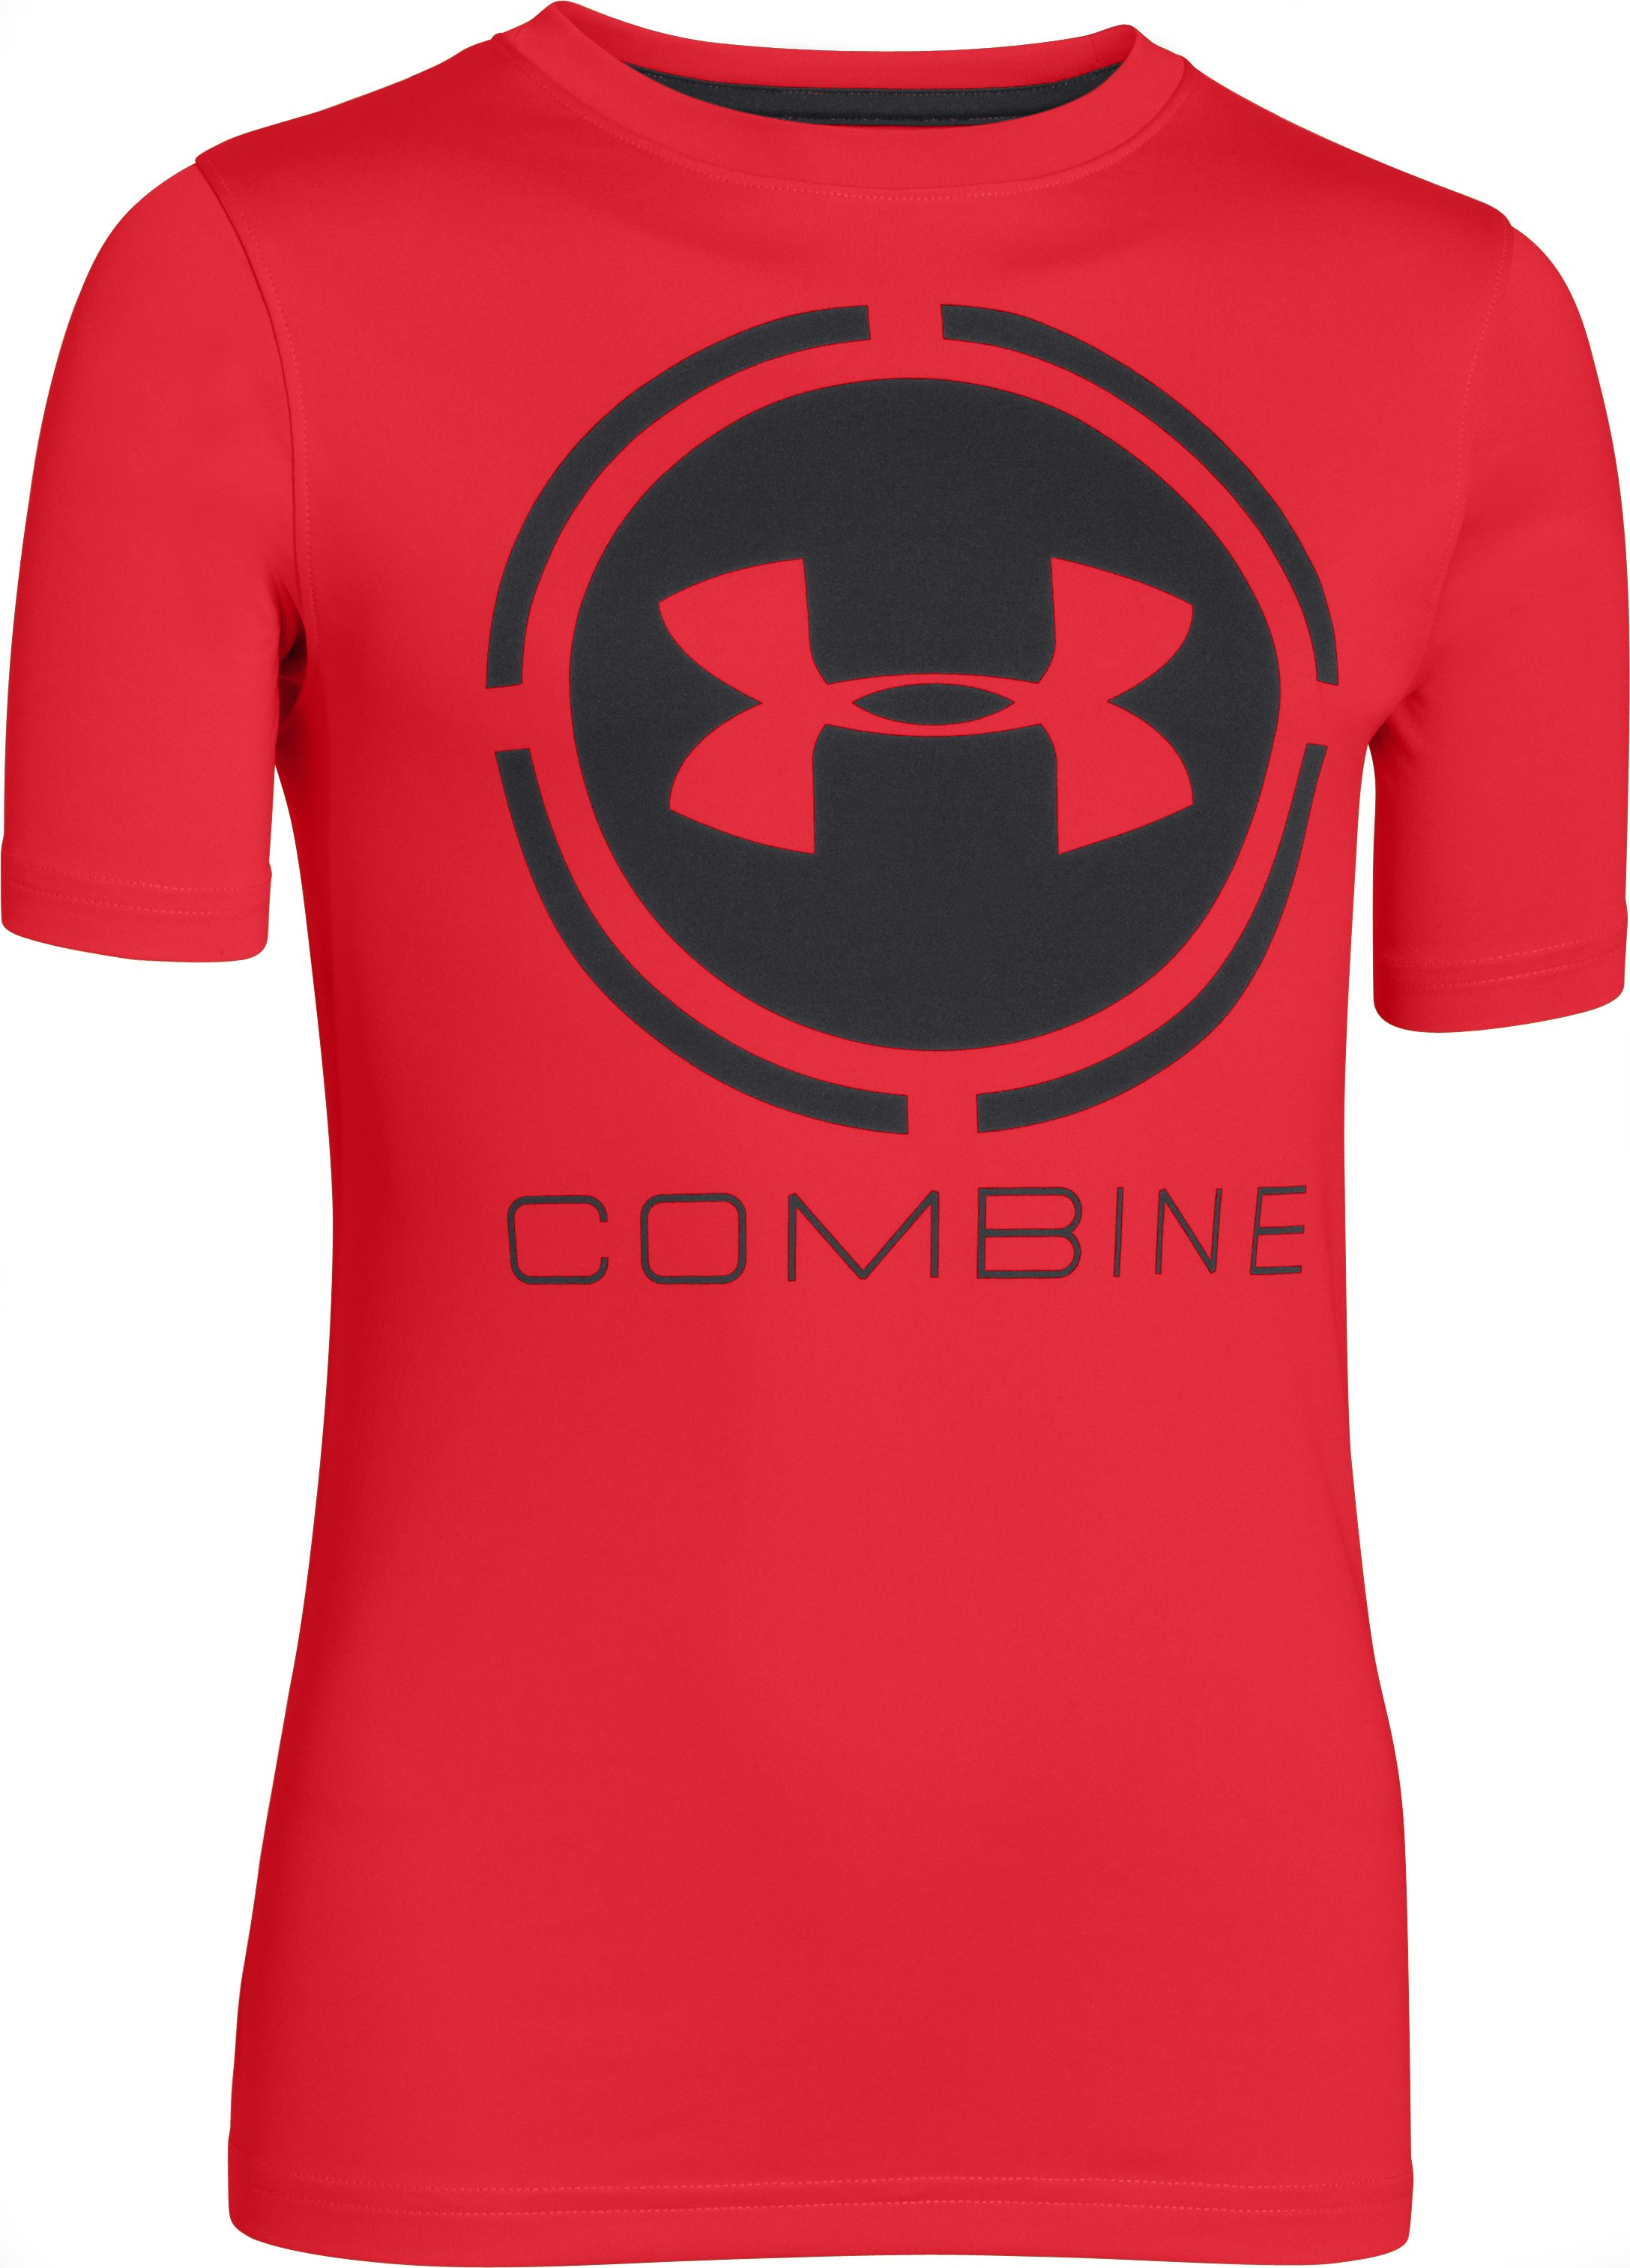 Boys' UA Combine® Training T-Shirt, RISK RED